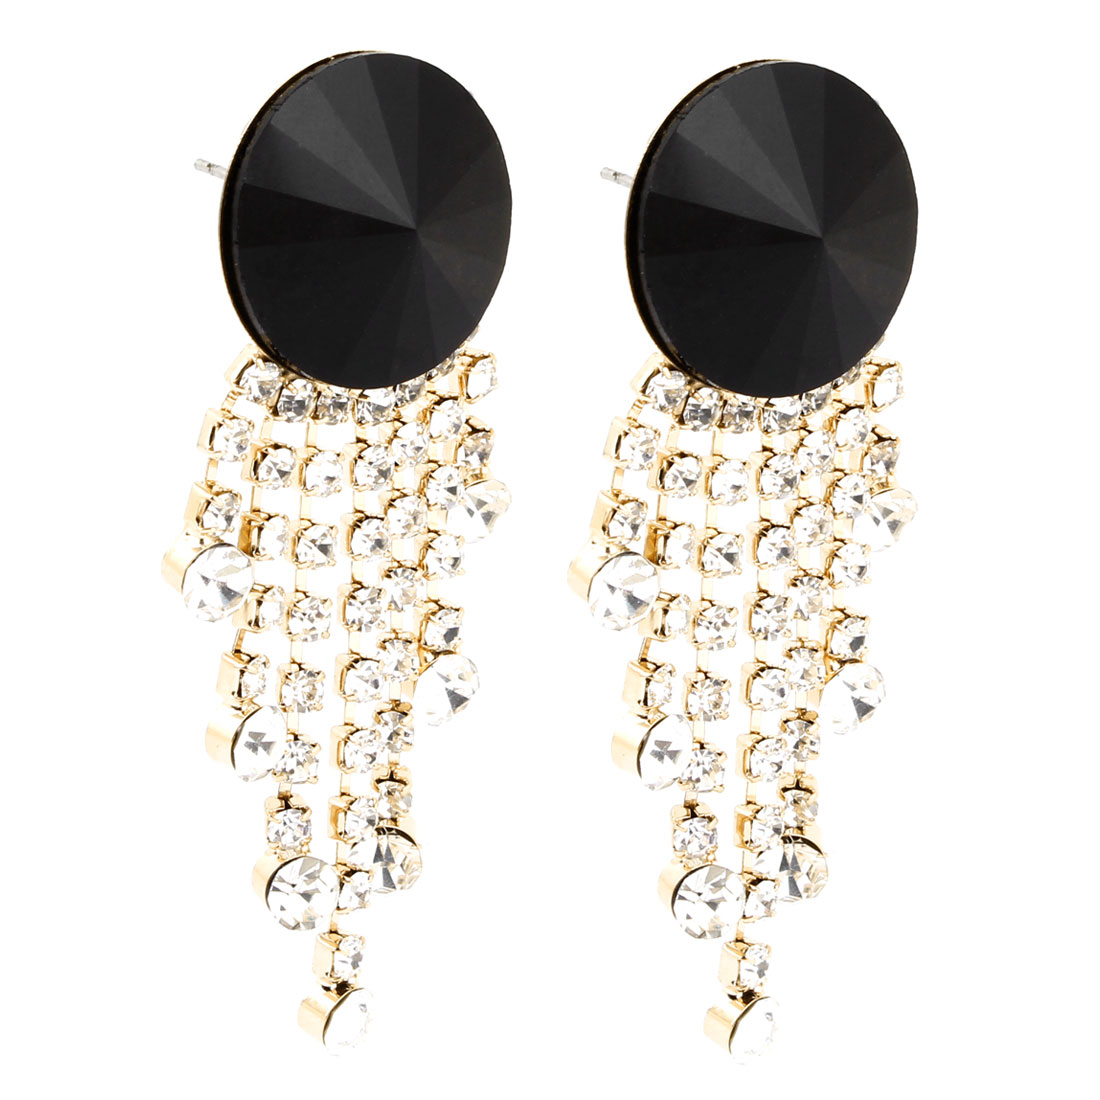 Pair Rhinestone Inlaid Tassels Pendant Stud Earrings for Ladies